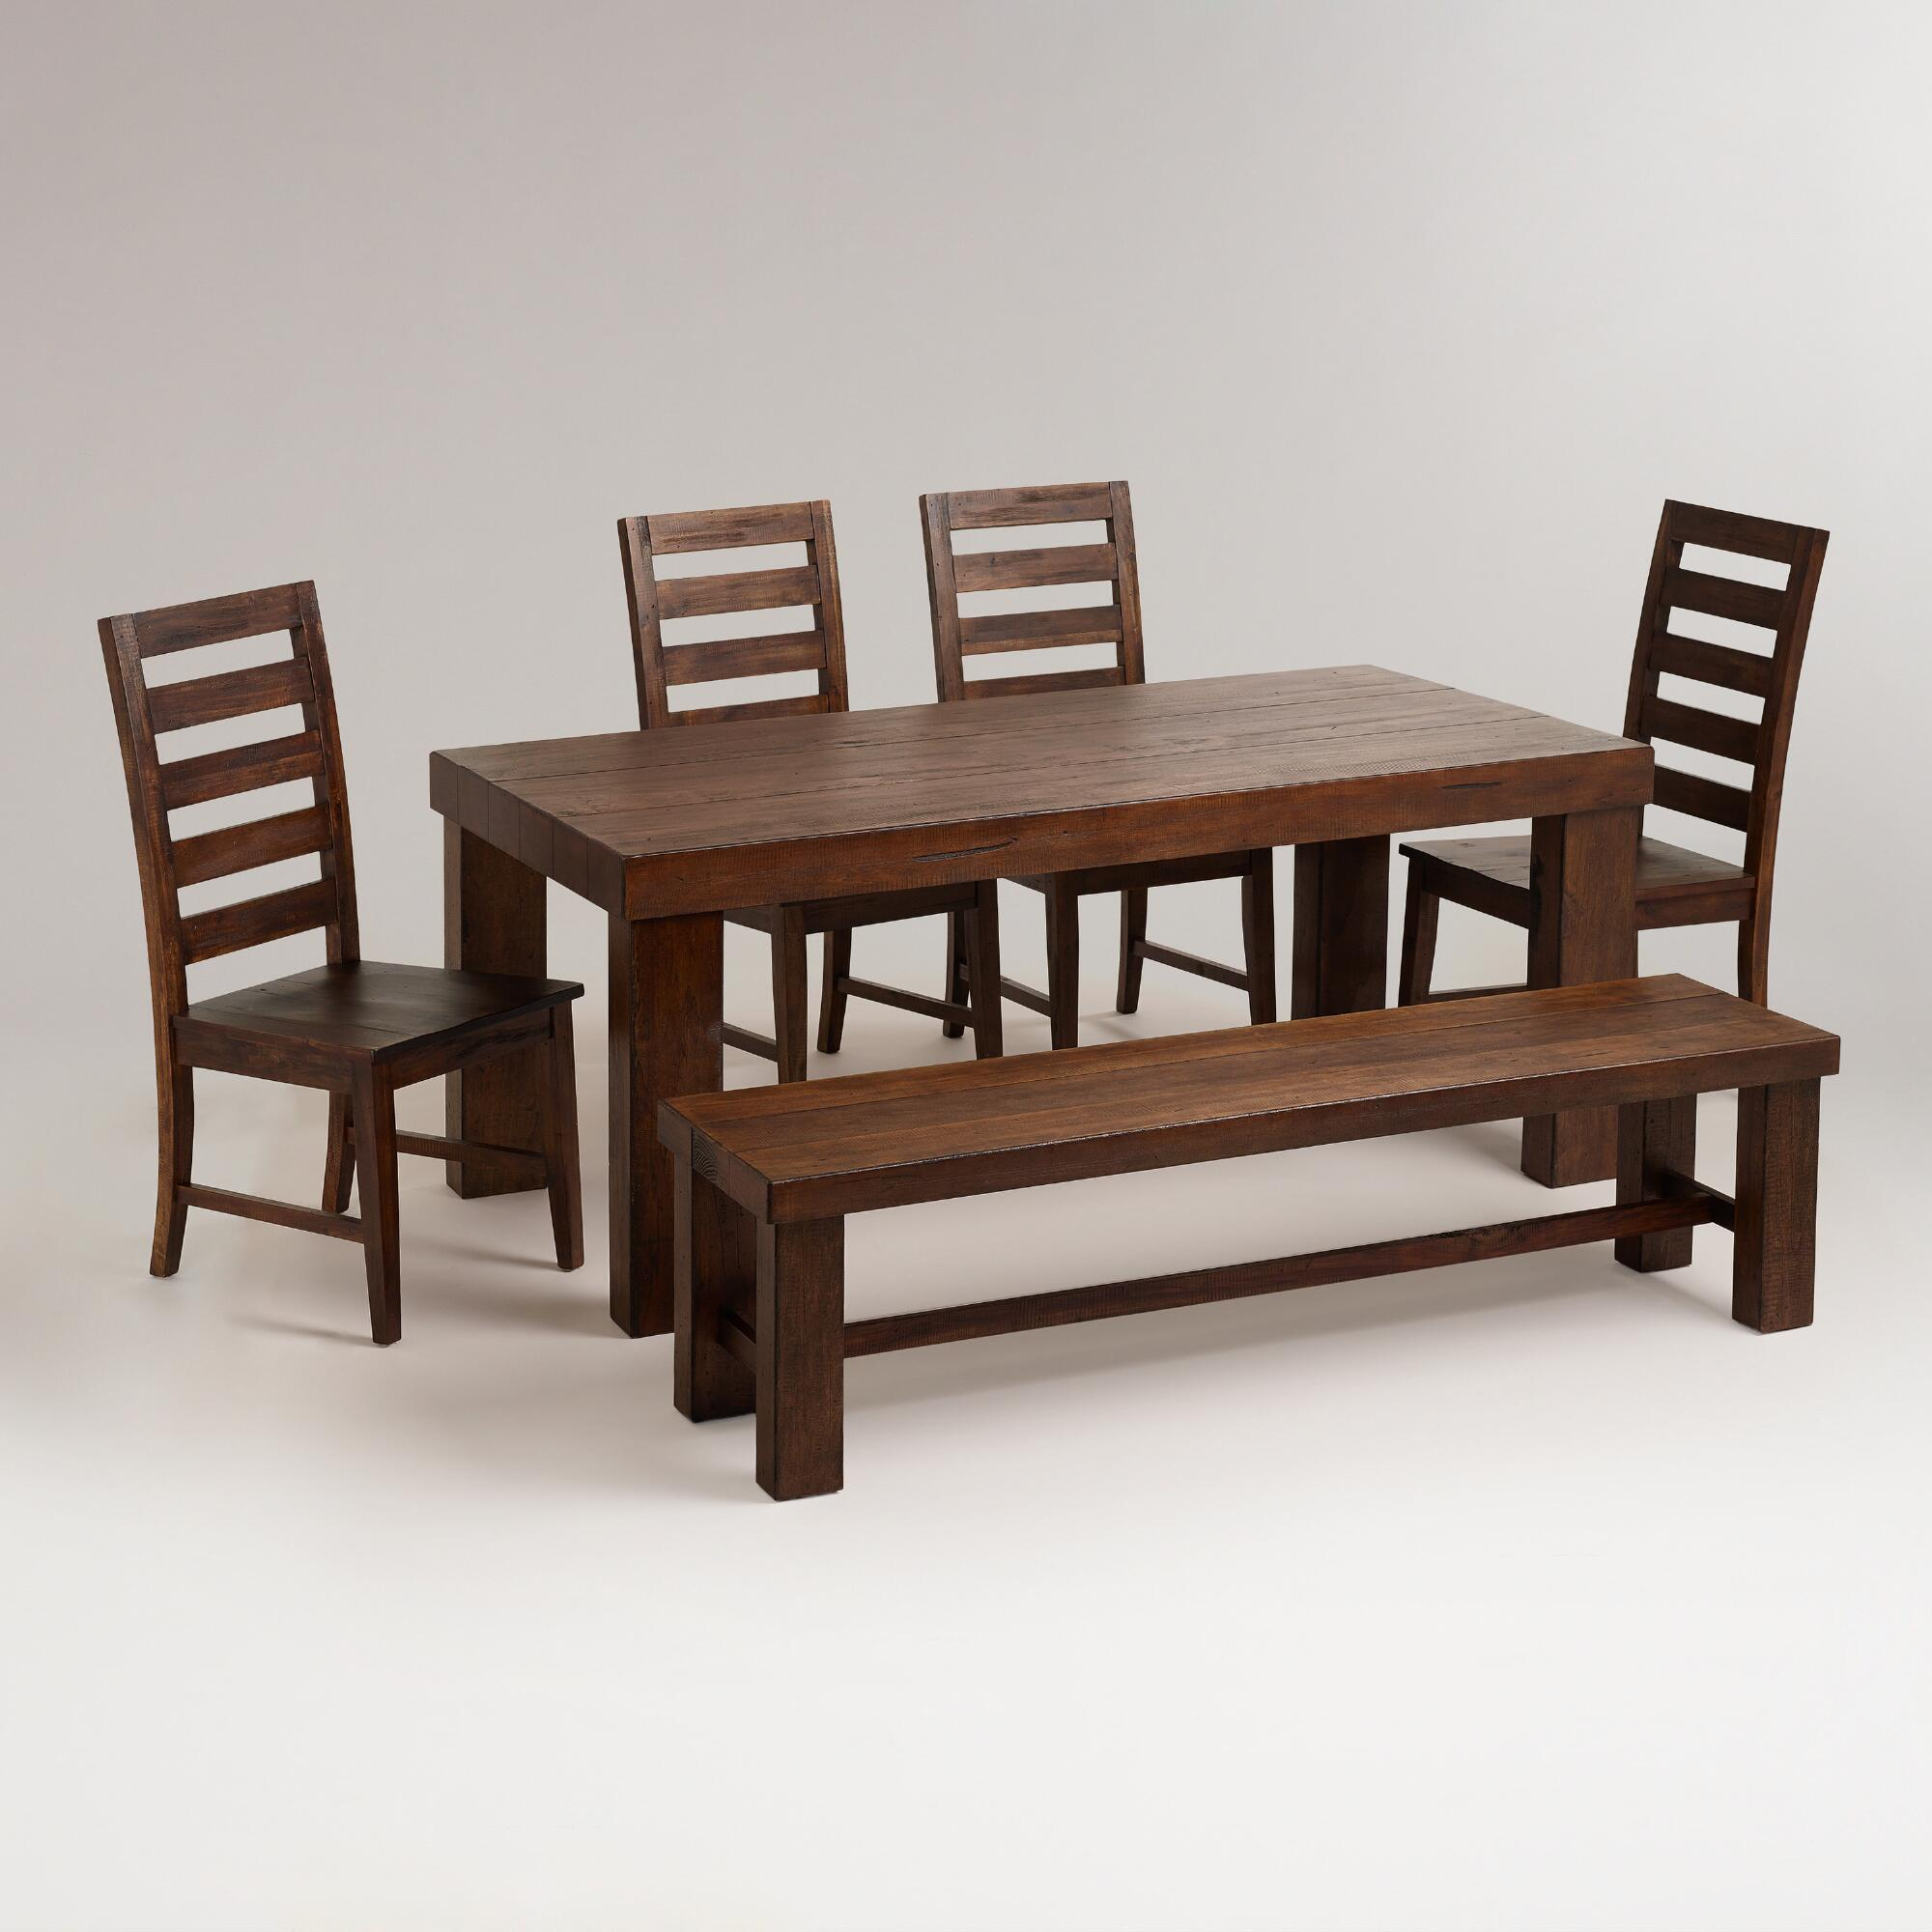 Francine dining furniture collection world market for Furniture collection